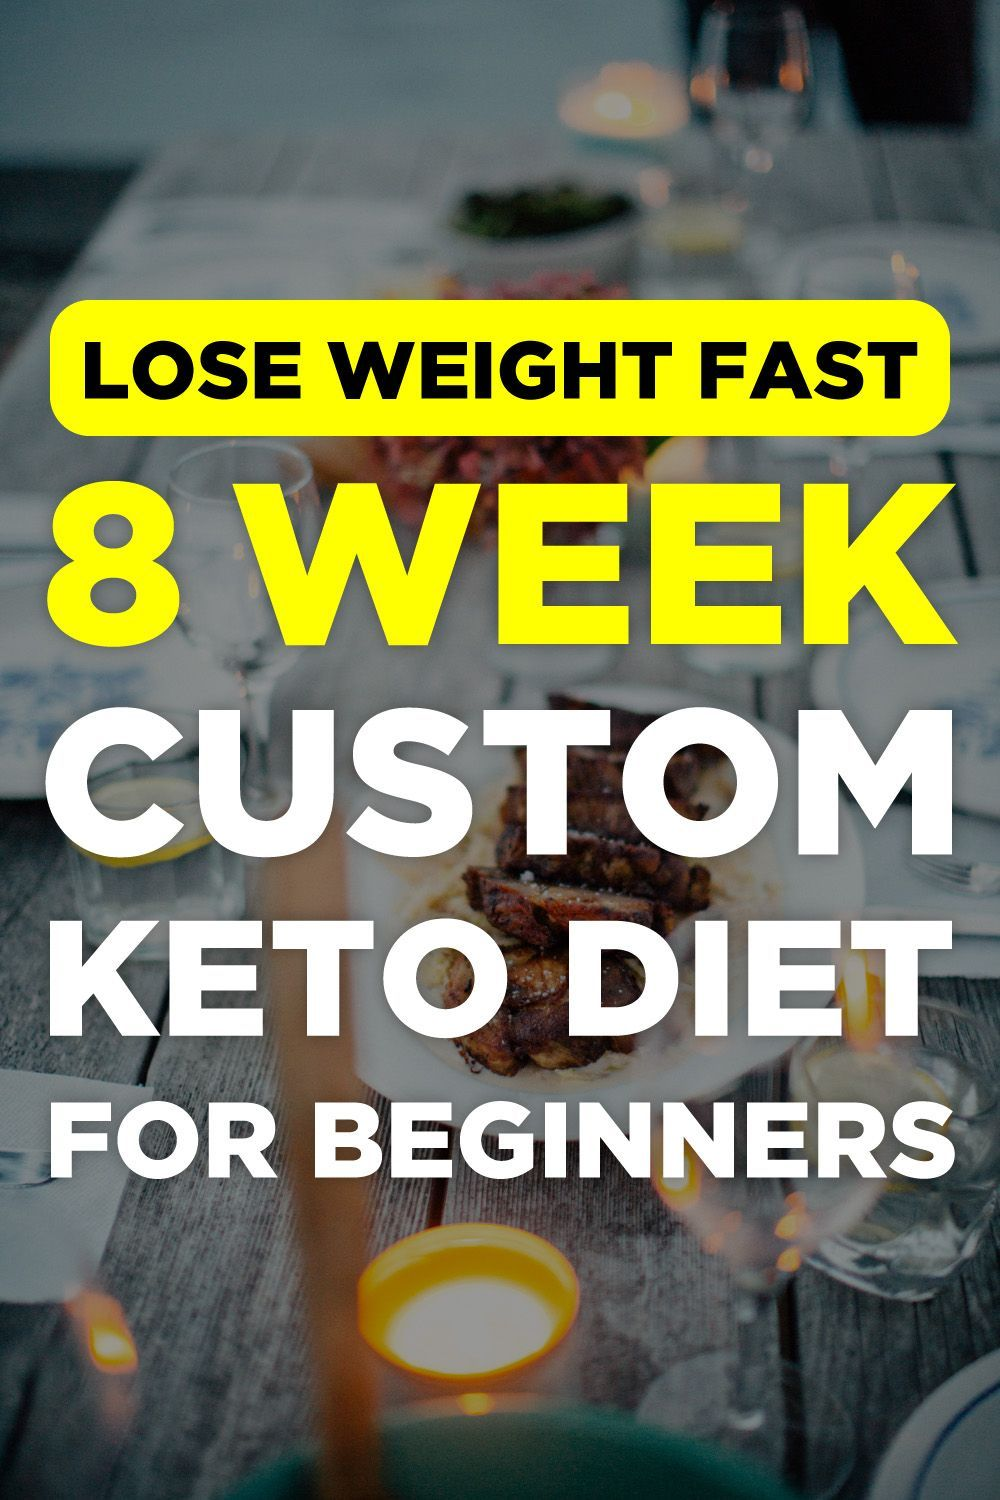 gym workouts to lose weight, keto diet and diabetes, vegetarian diet, pre workout food, keto diet free, low carb diet recipes, eat pretty recipes, keto diet eggs, keto diet plan pdf, keto diet health risks, keto diet pdf, lose 20 pounds in 2 weeks meal plan, ketogenic recipes dinner keto, lose 80 pounds in 6 months, protien diet, keto granola, weight loss workout plan, meals to lose weight fast, lose diet, hitt workout, workout lose, #protiendiet gym workouts to lose weight,